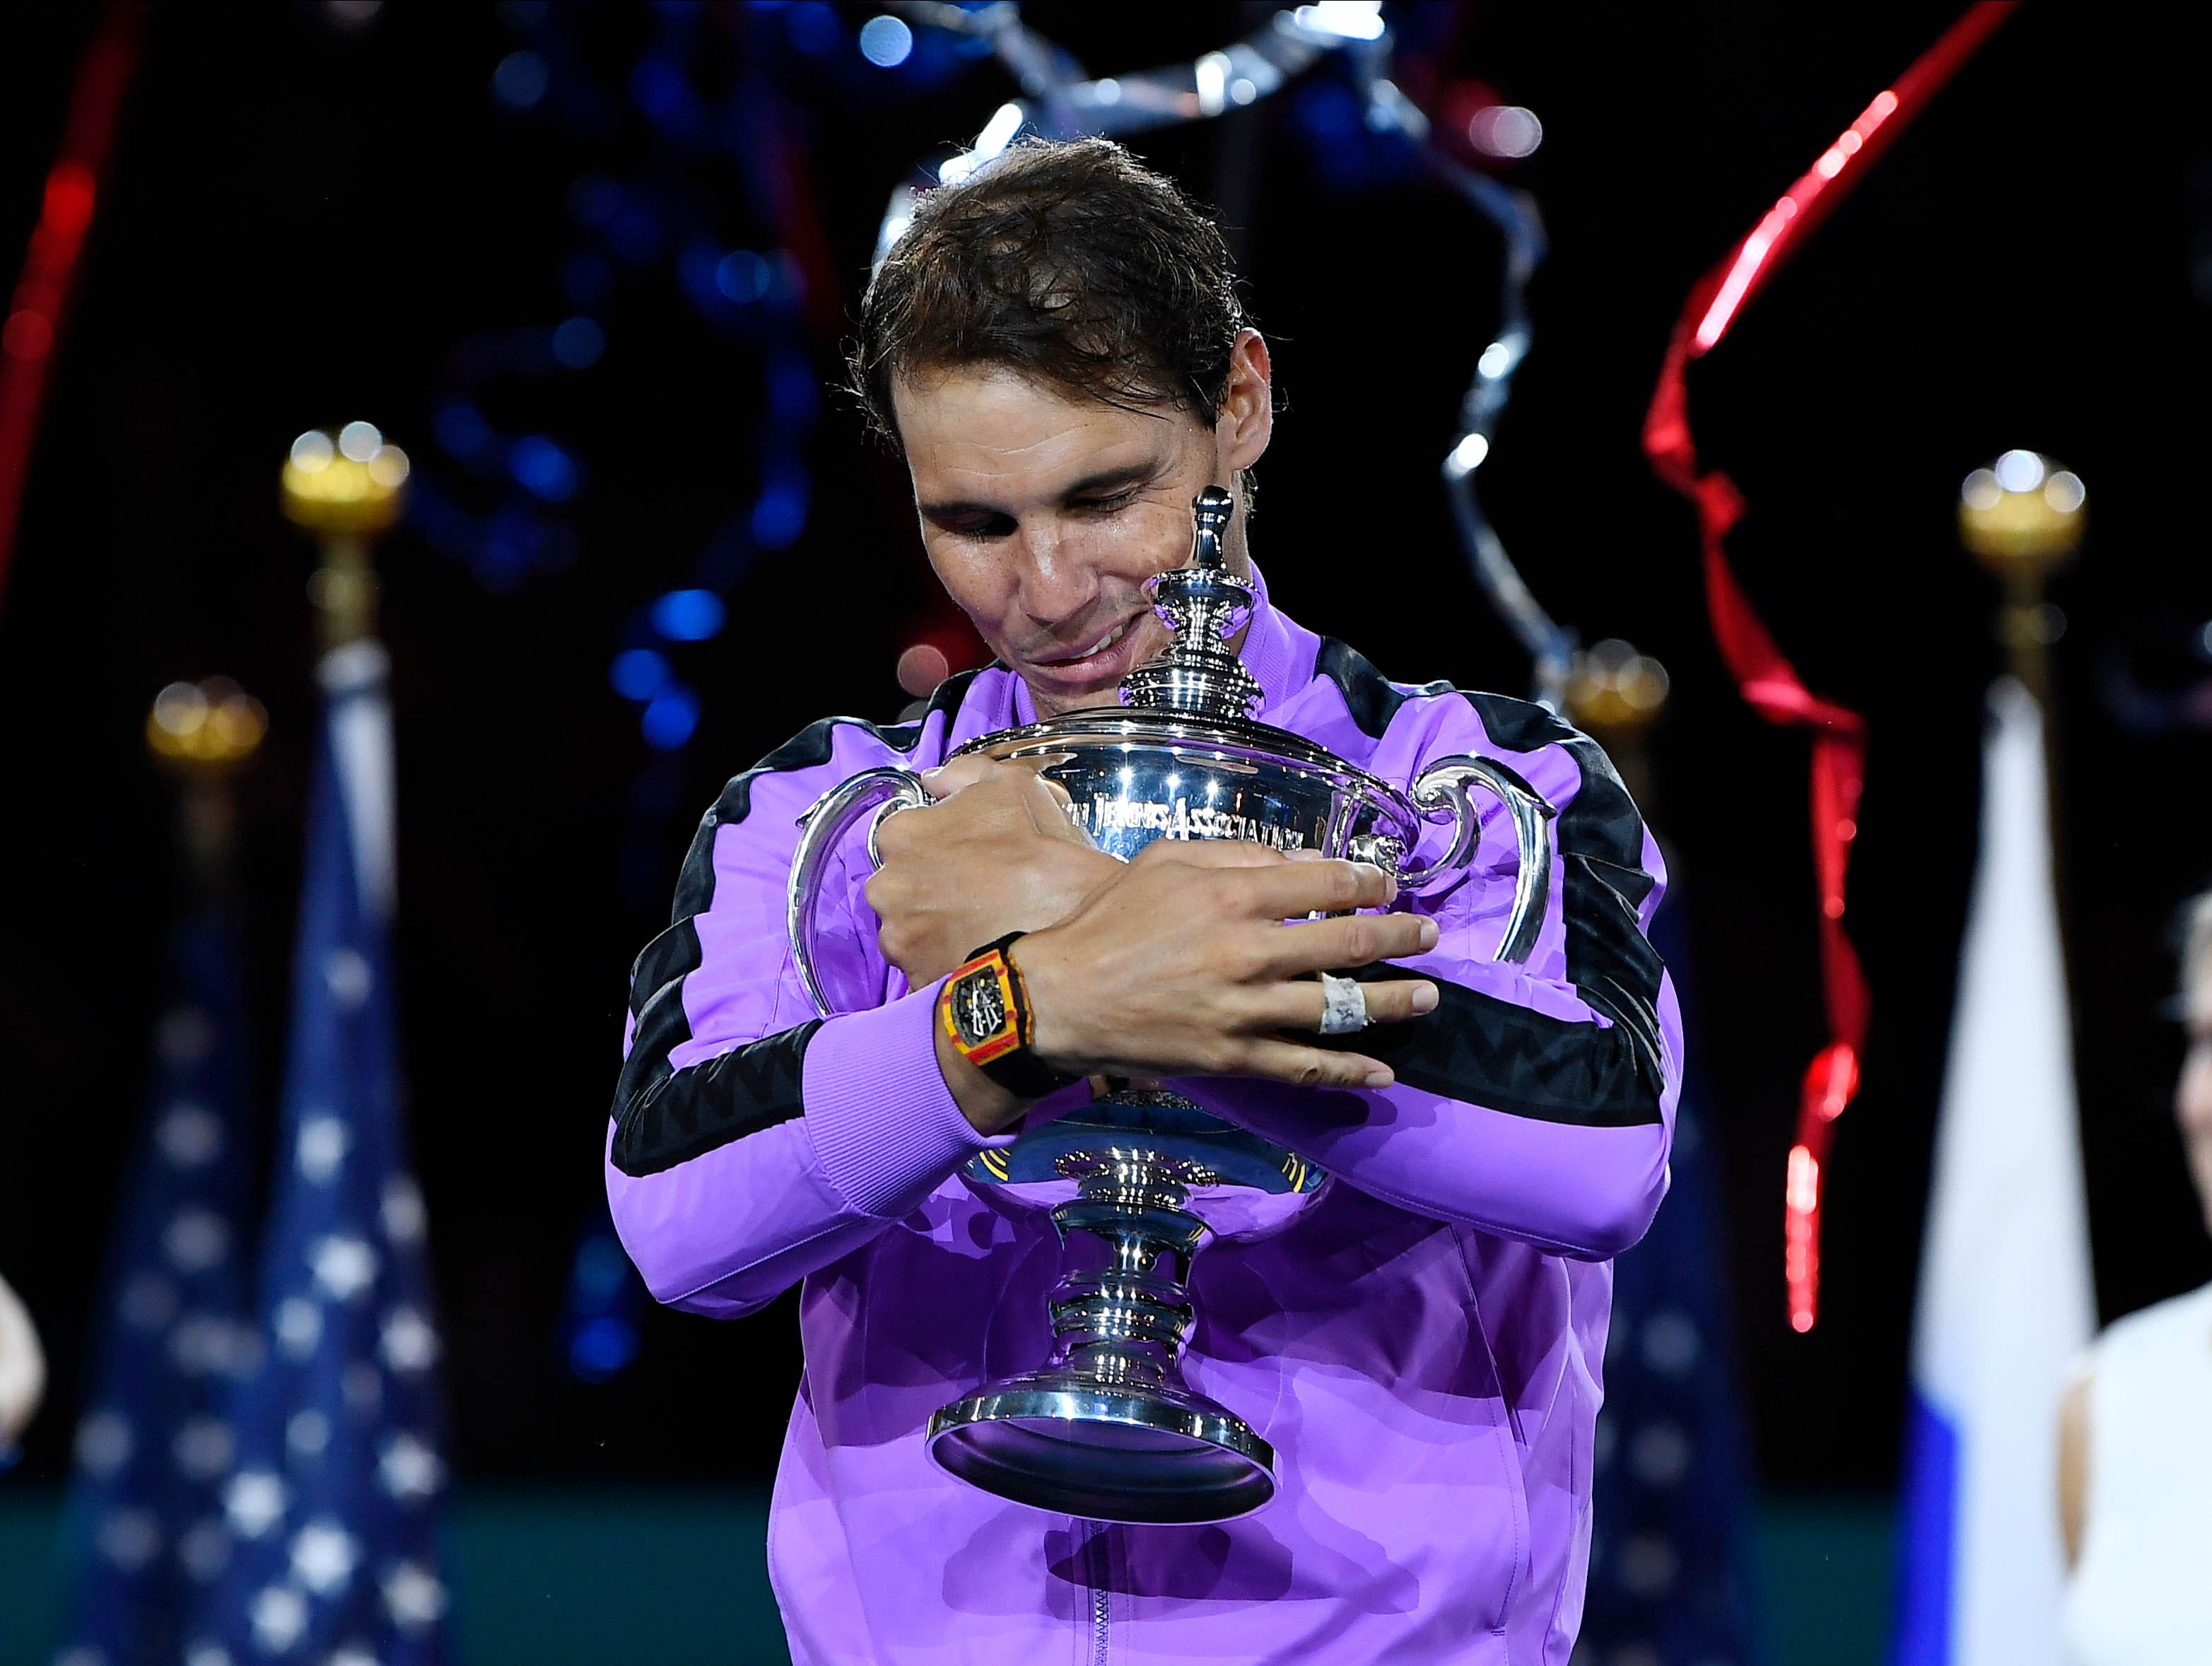 Opinion: Rafael Nadal humble matador once more, finds way to win when all is going wrong